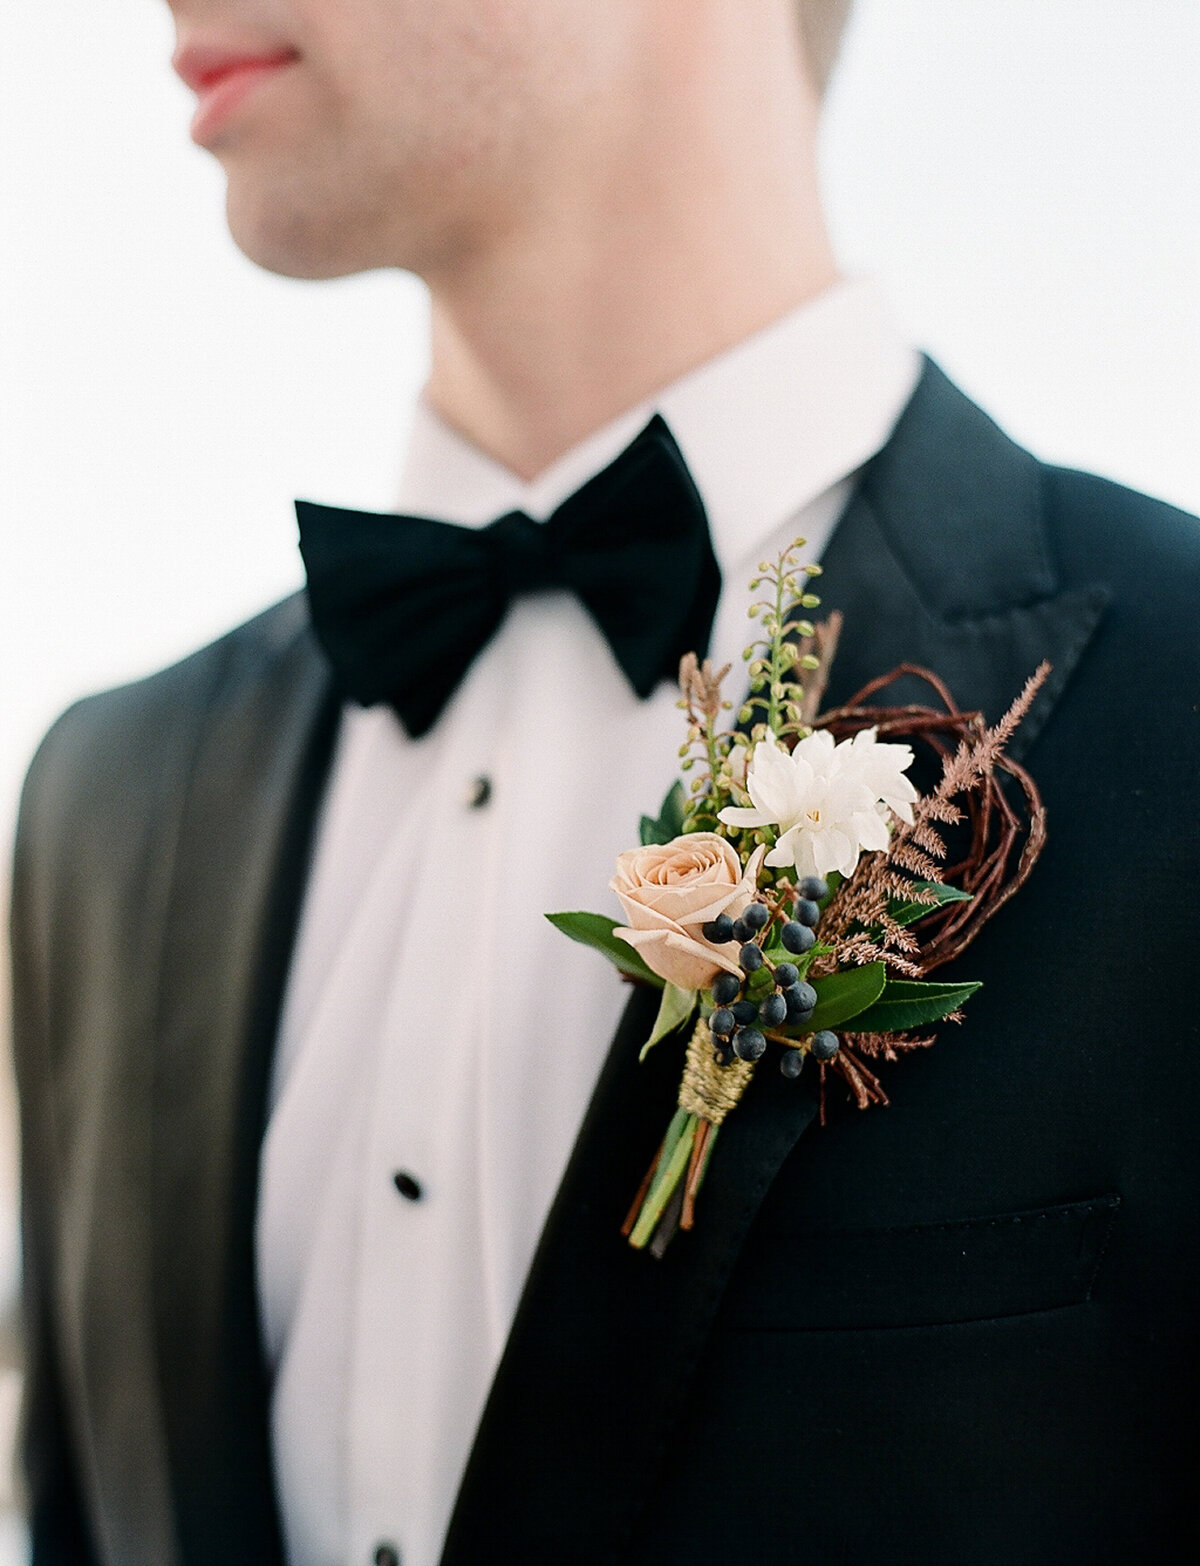 Groom wearing tuxedo and boutonniere at wedding